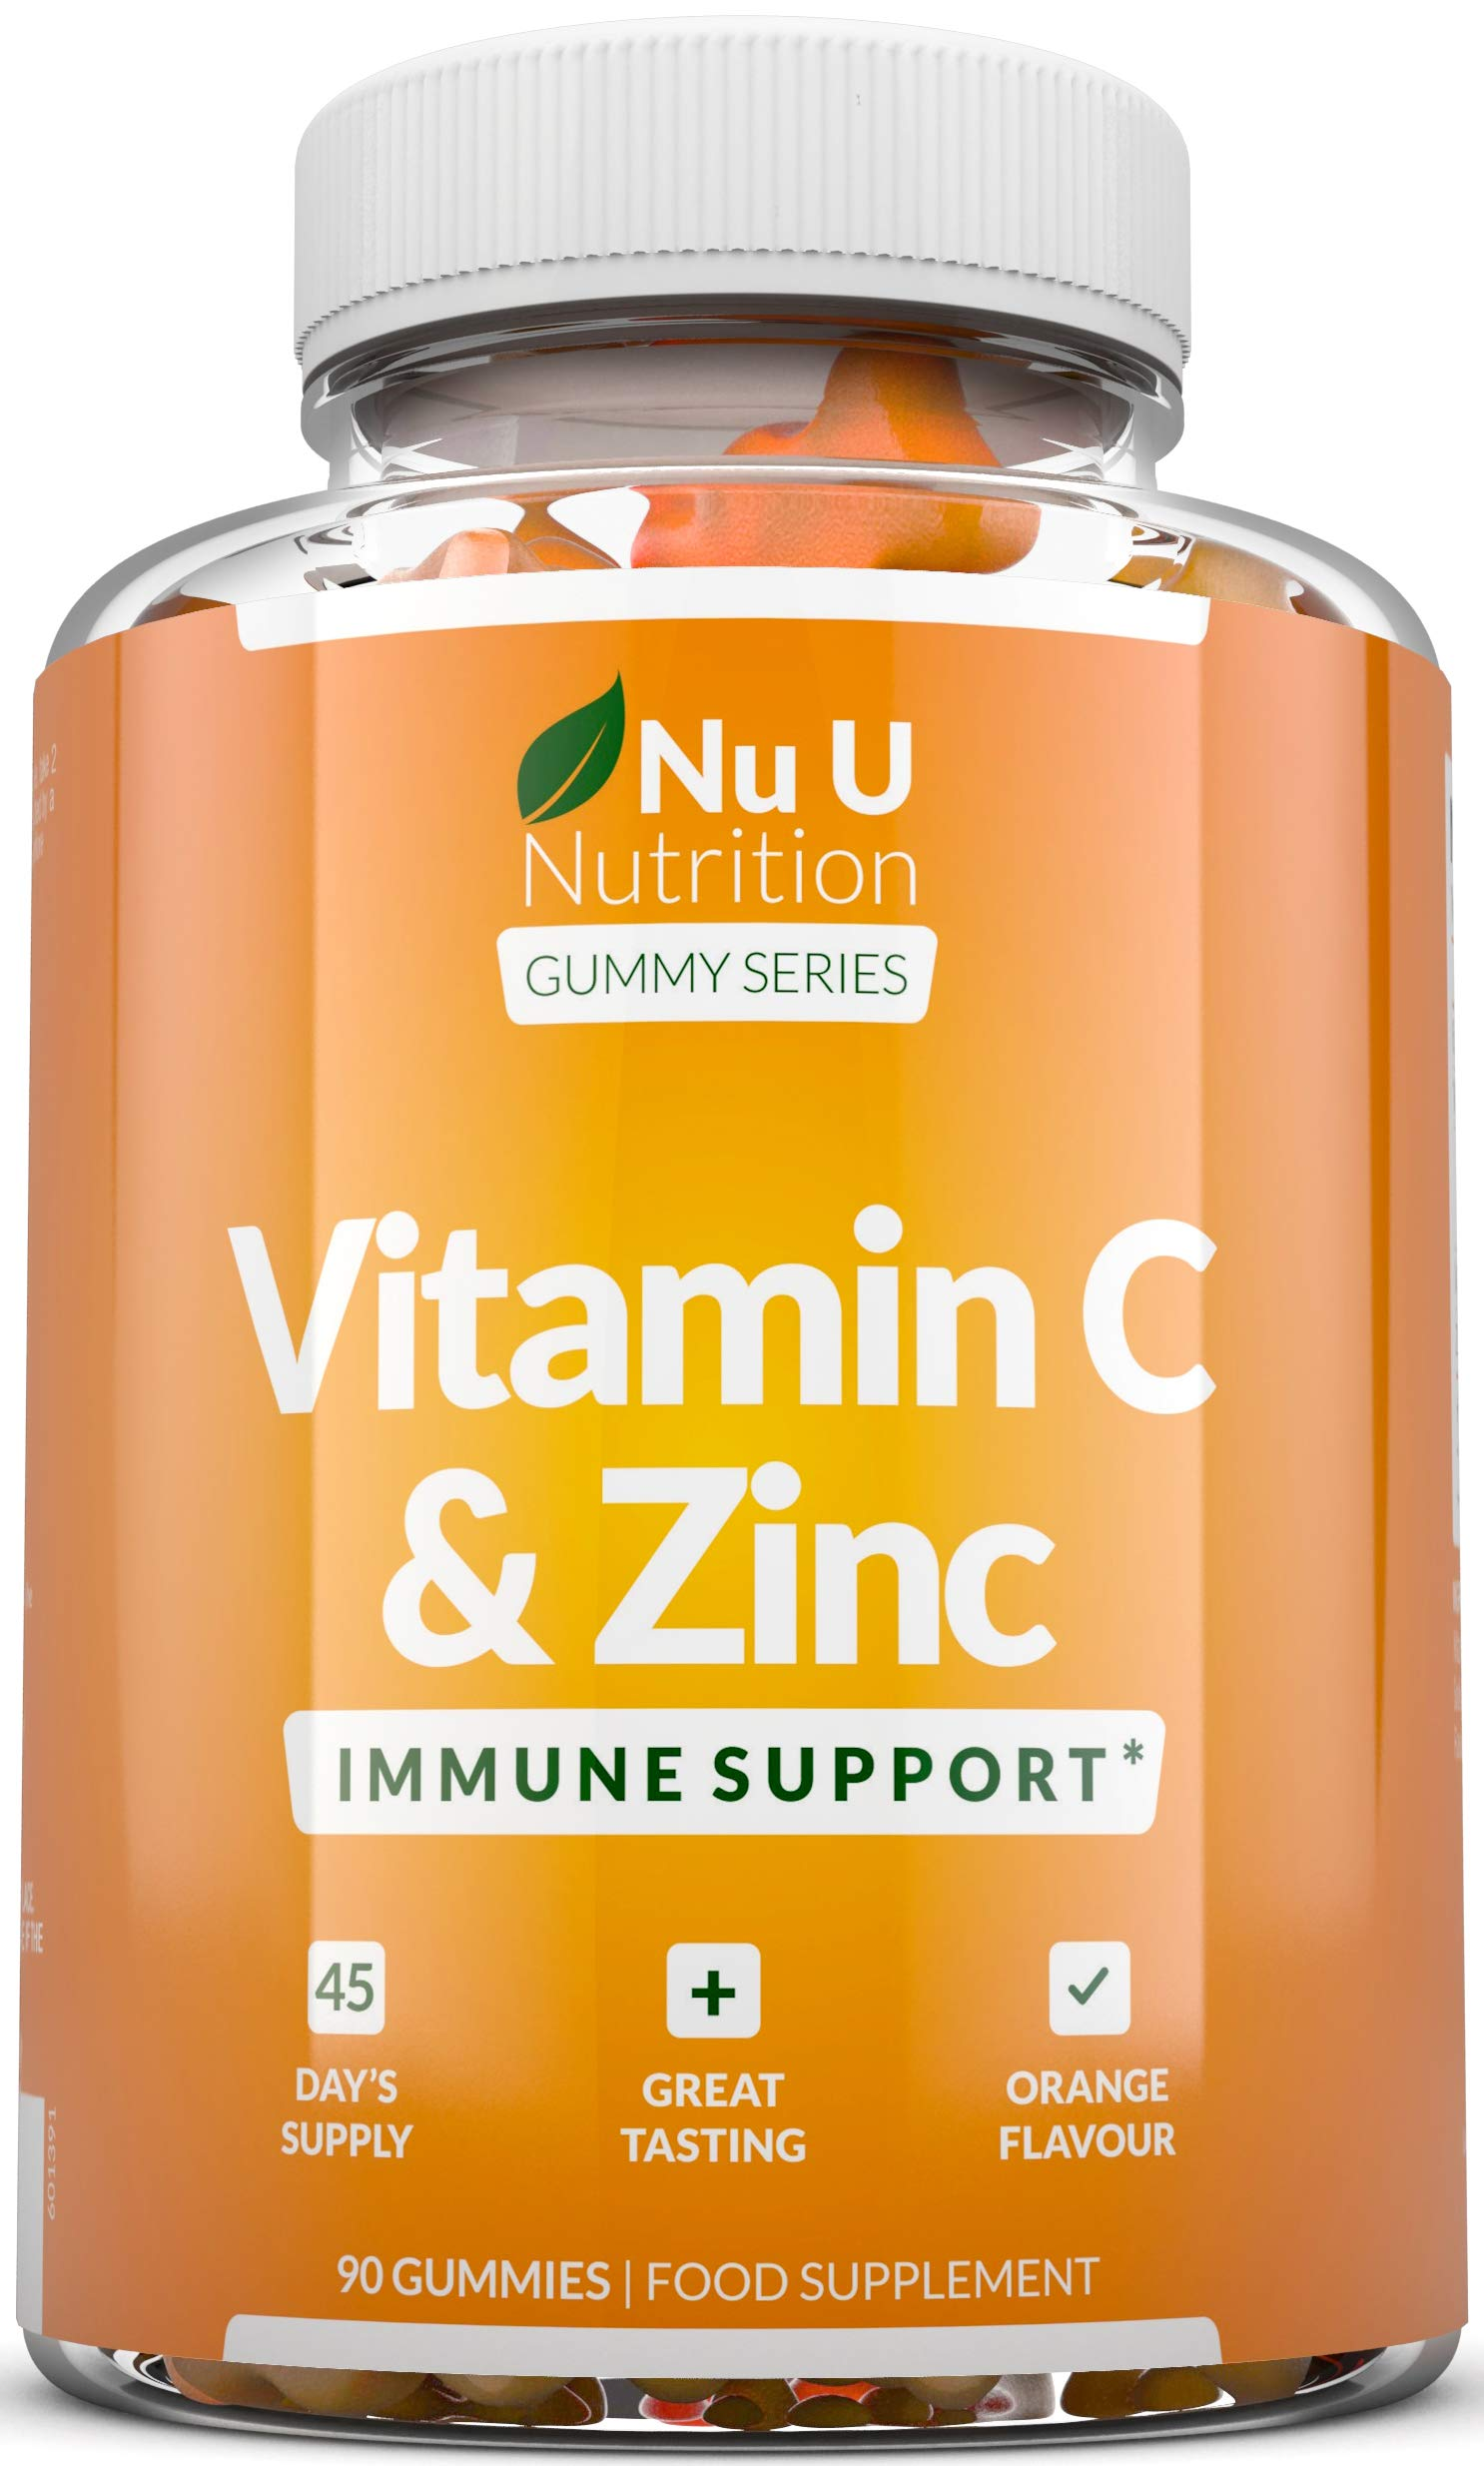 Vitamin C and Zinc Gummies - Immune Support - 60mg Vitamin C as Ascorbic Acid - 90 Gummies 45 Day Supply - Orange Flavoured Chewable Gummy Supplement for Adults & Children - Gluten Free Gummies